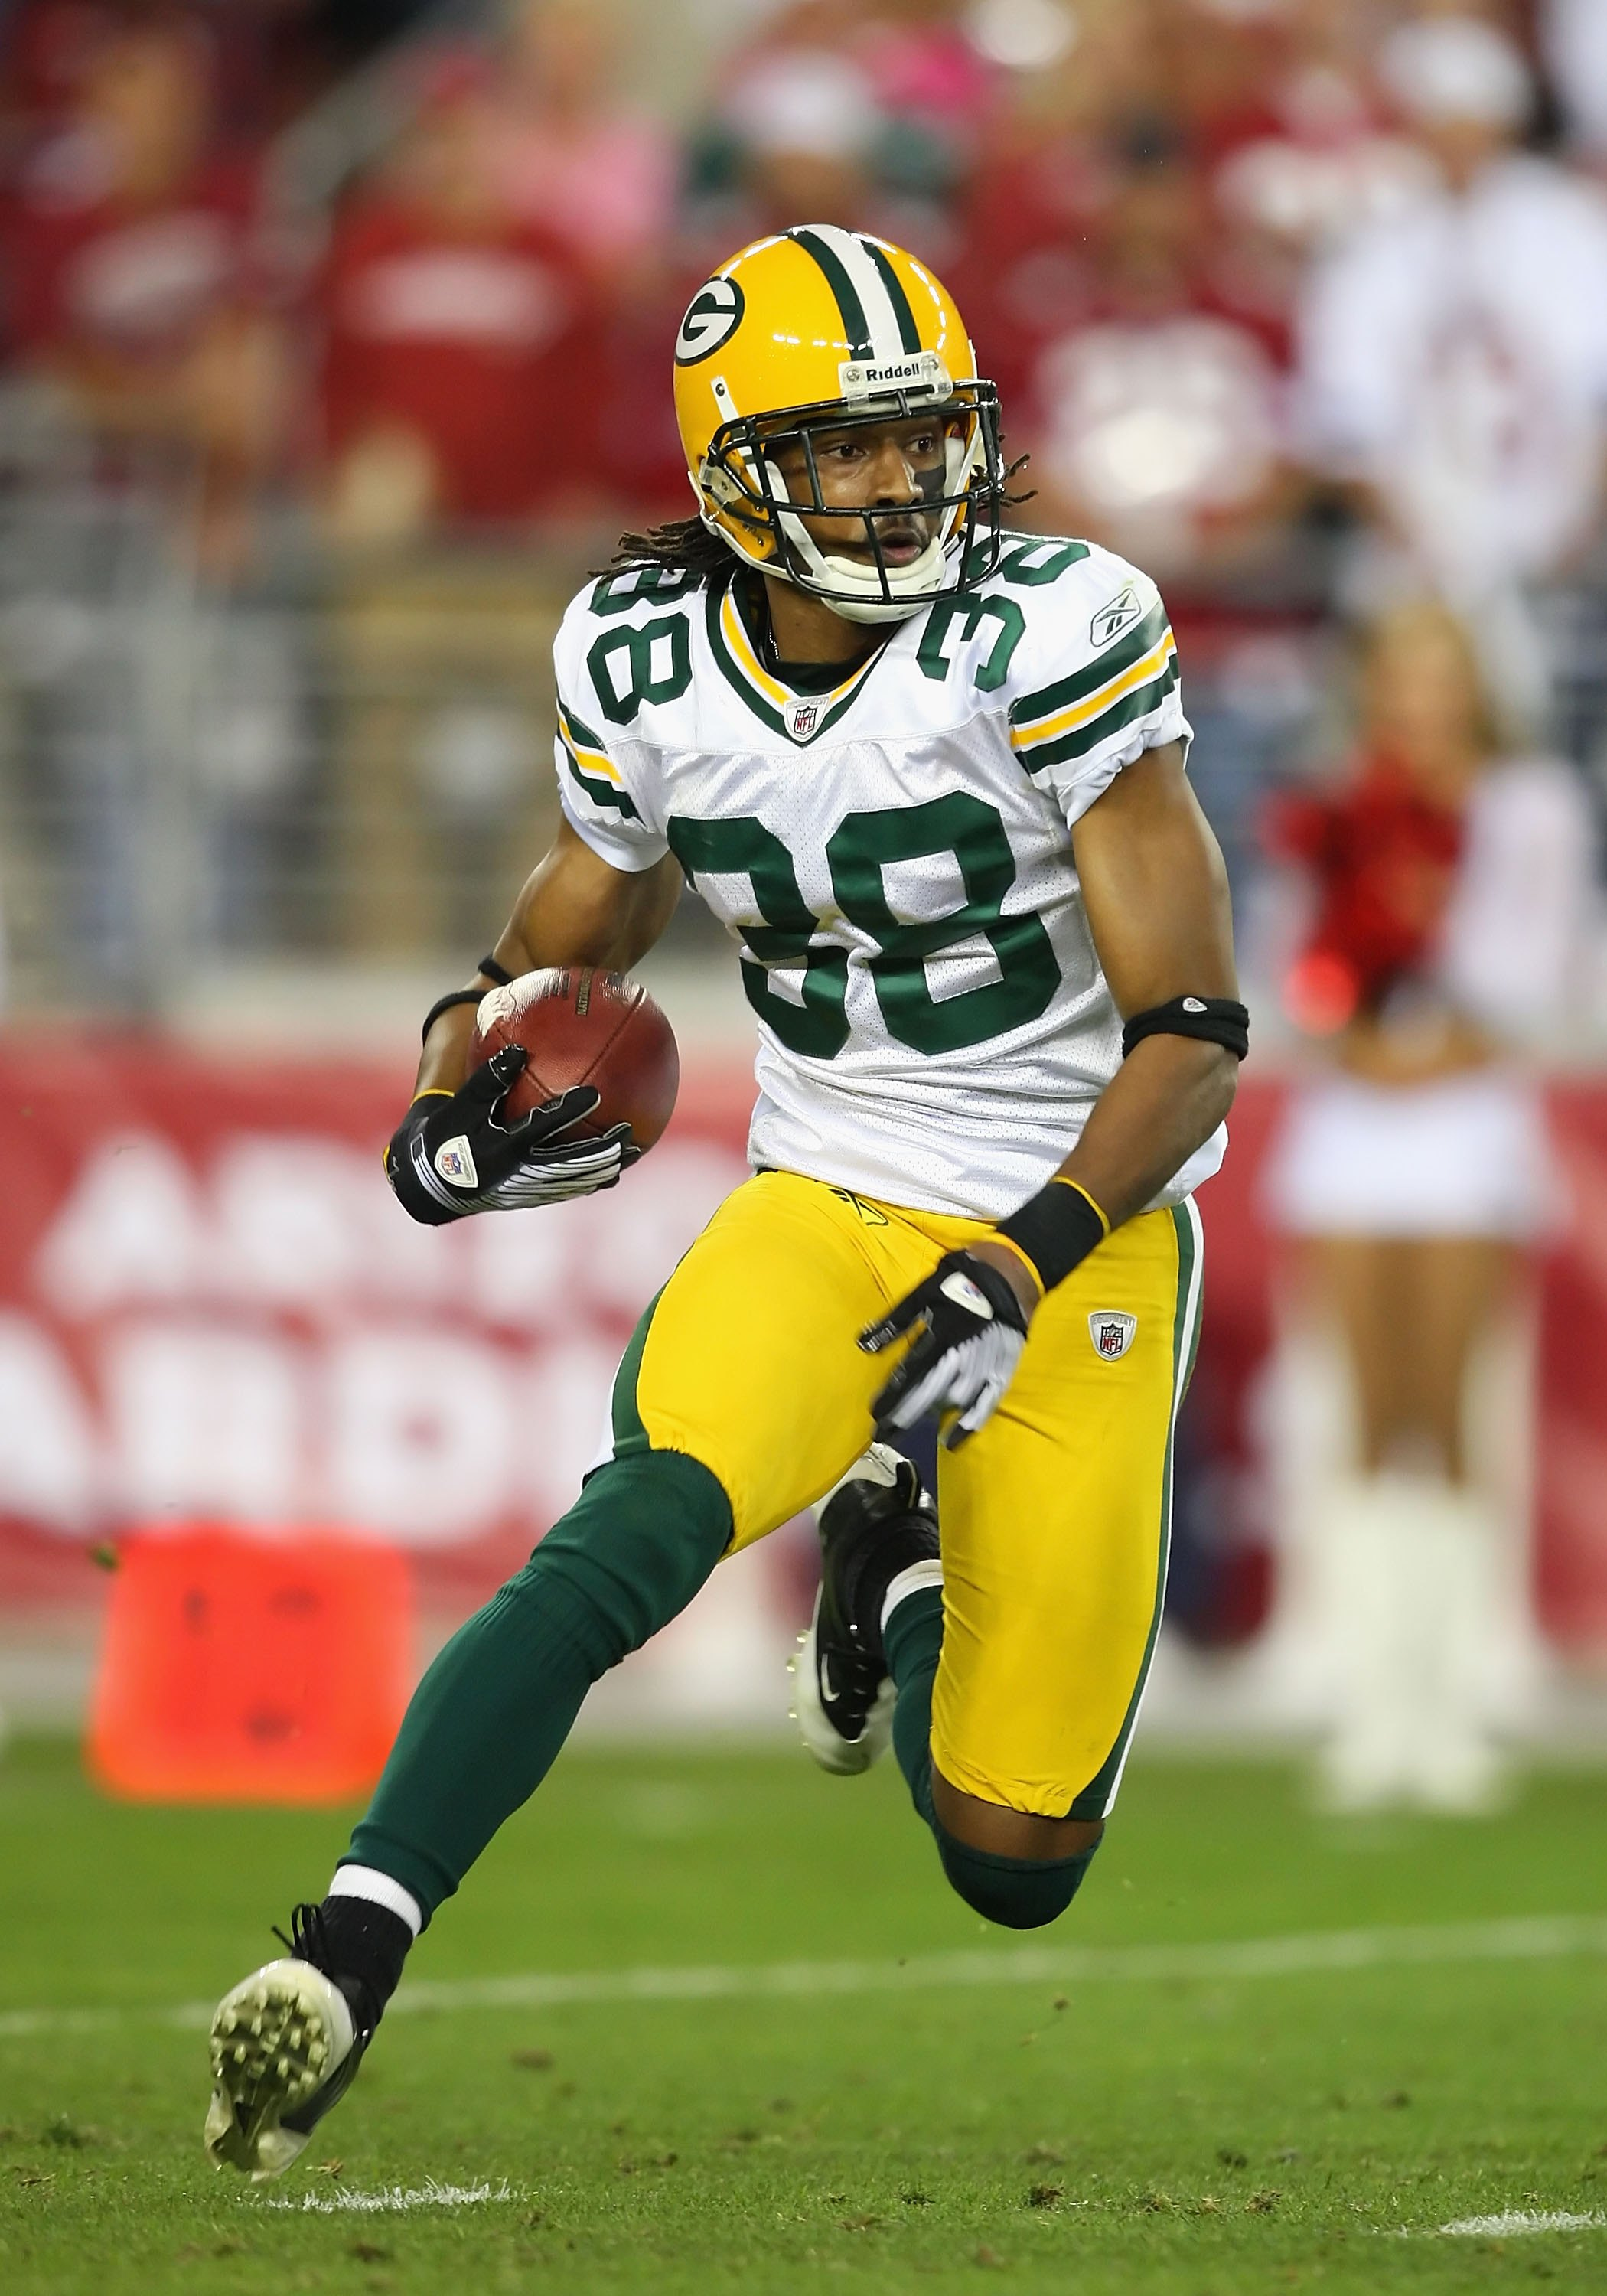 GLENDALE, AZ - JANUARY 10:  Tramon Williams #38 of the Green Bay Packers returns a kick off during the 2010 NFC wild-card playoff game against the Arizona Cardinals at the Universtity of Phoenix Stadium on January 10, 2010 in Glendale, Arizona.  The Cardi